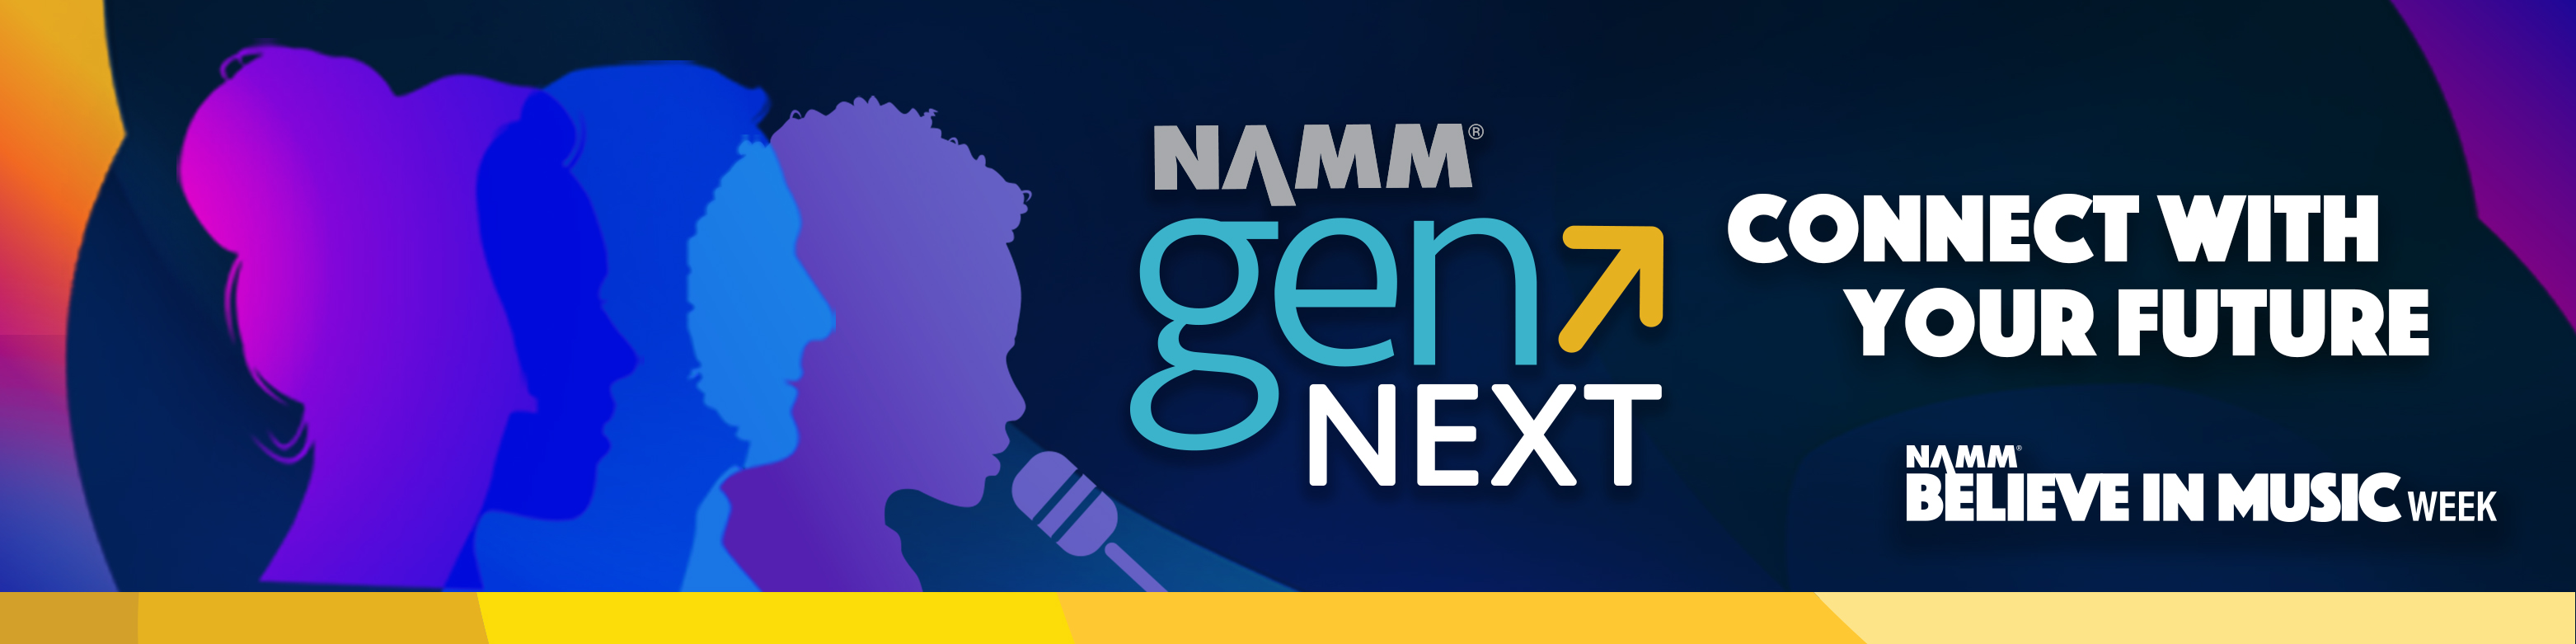 NAMM's GenNext Program